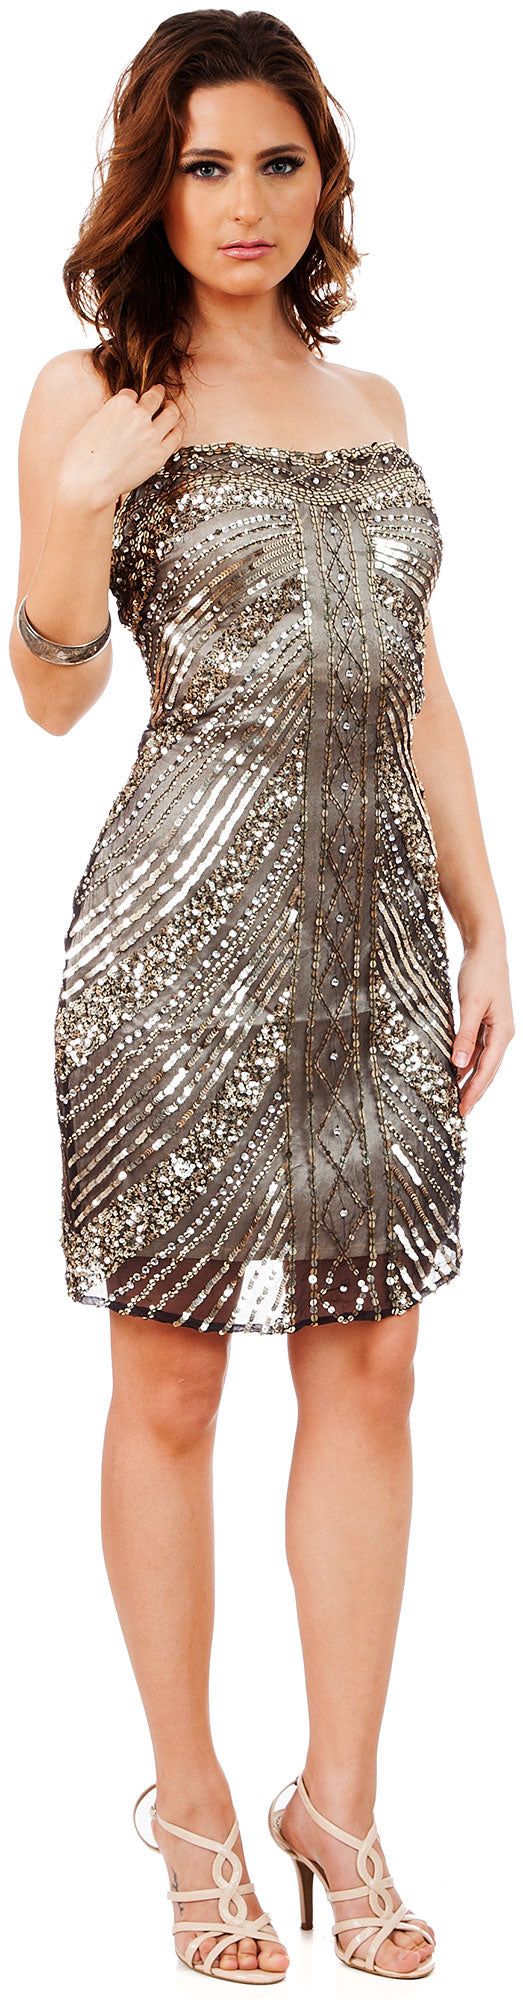 Main image of Strapless Short Sequined Homecoming Party Prom Dress